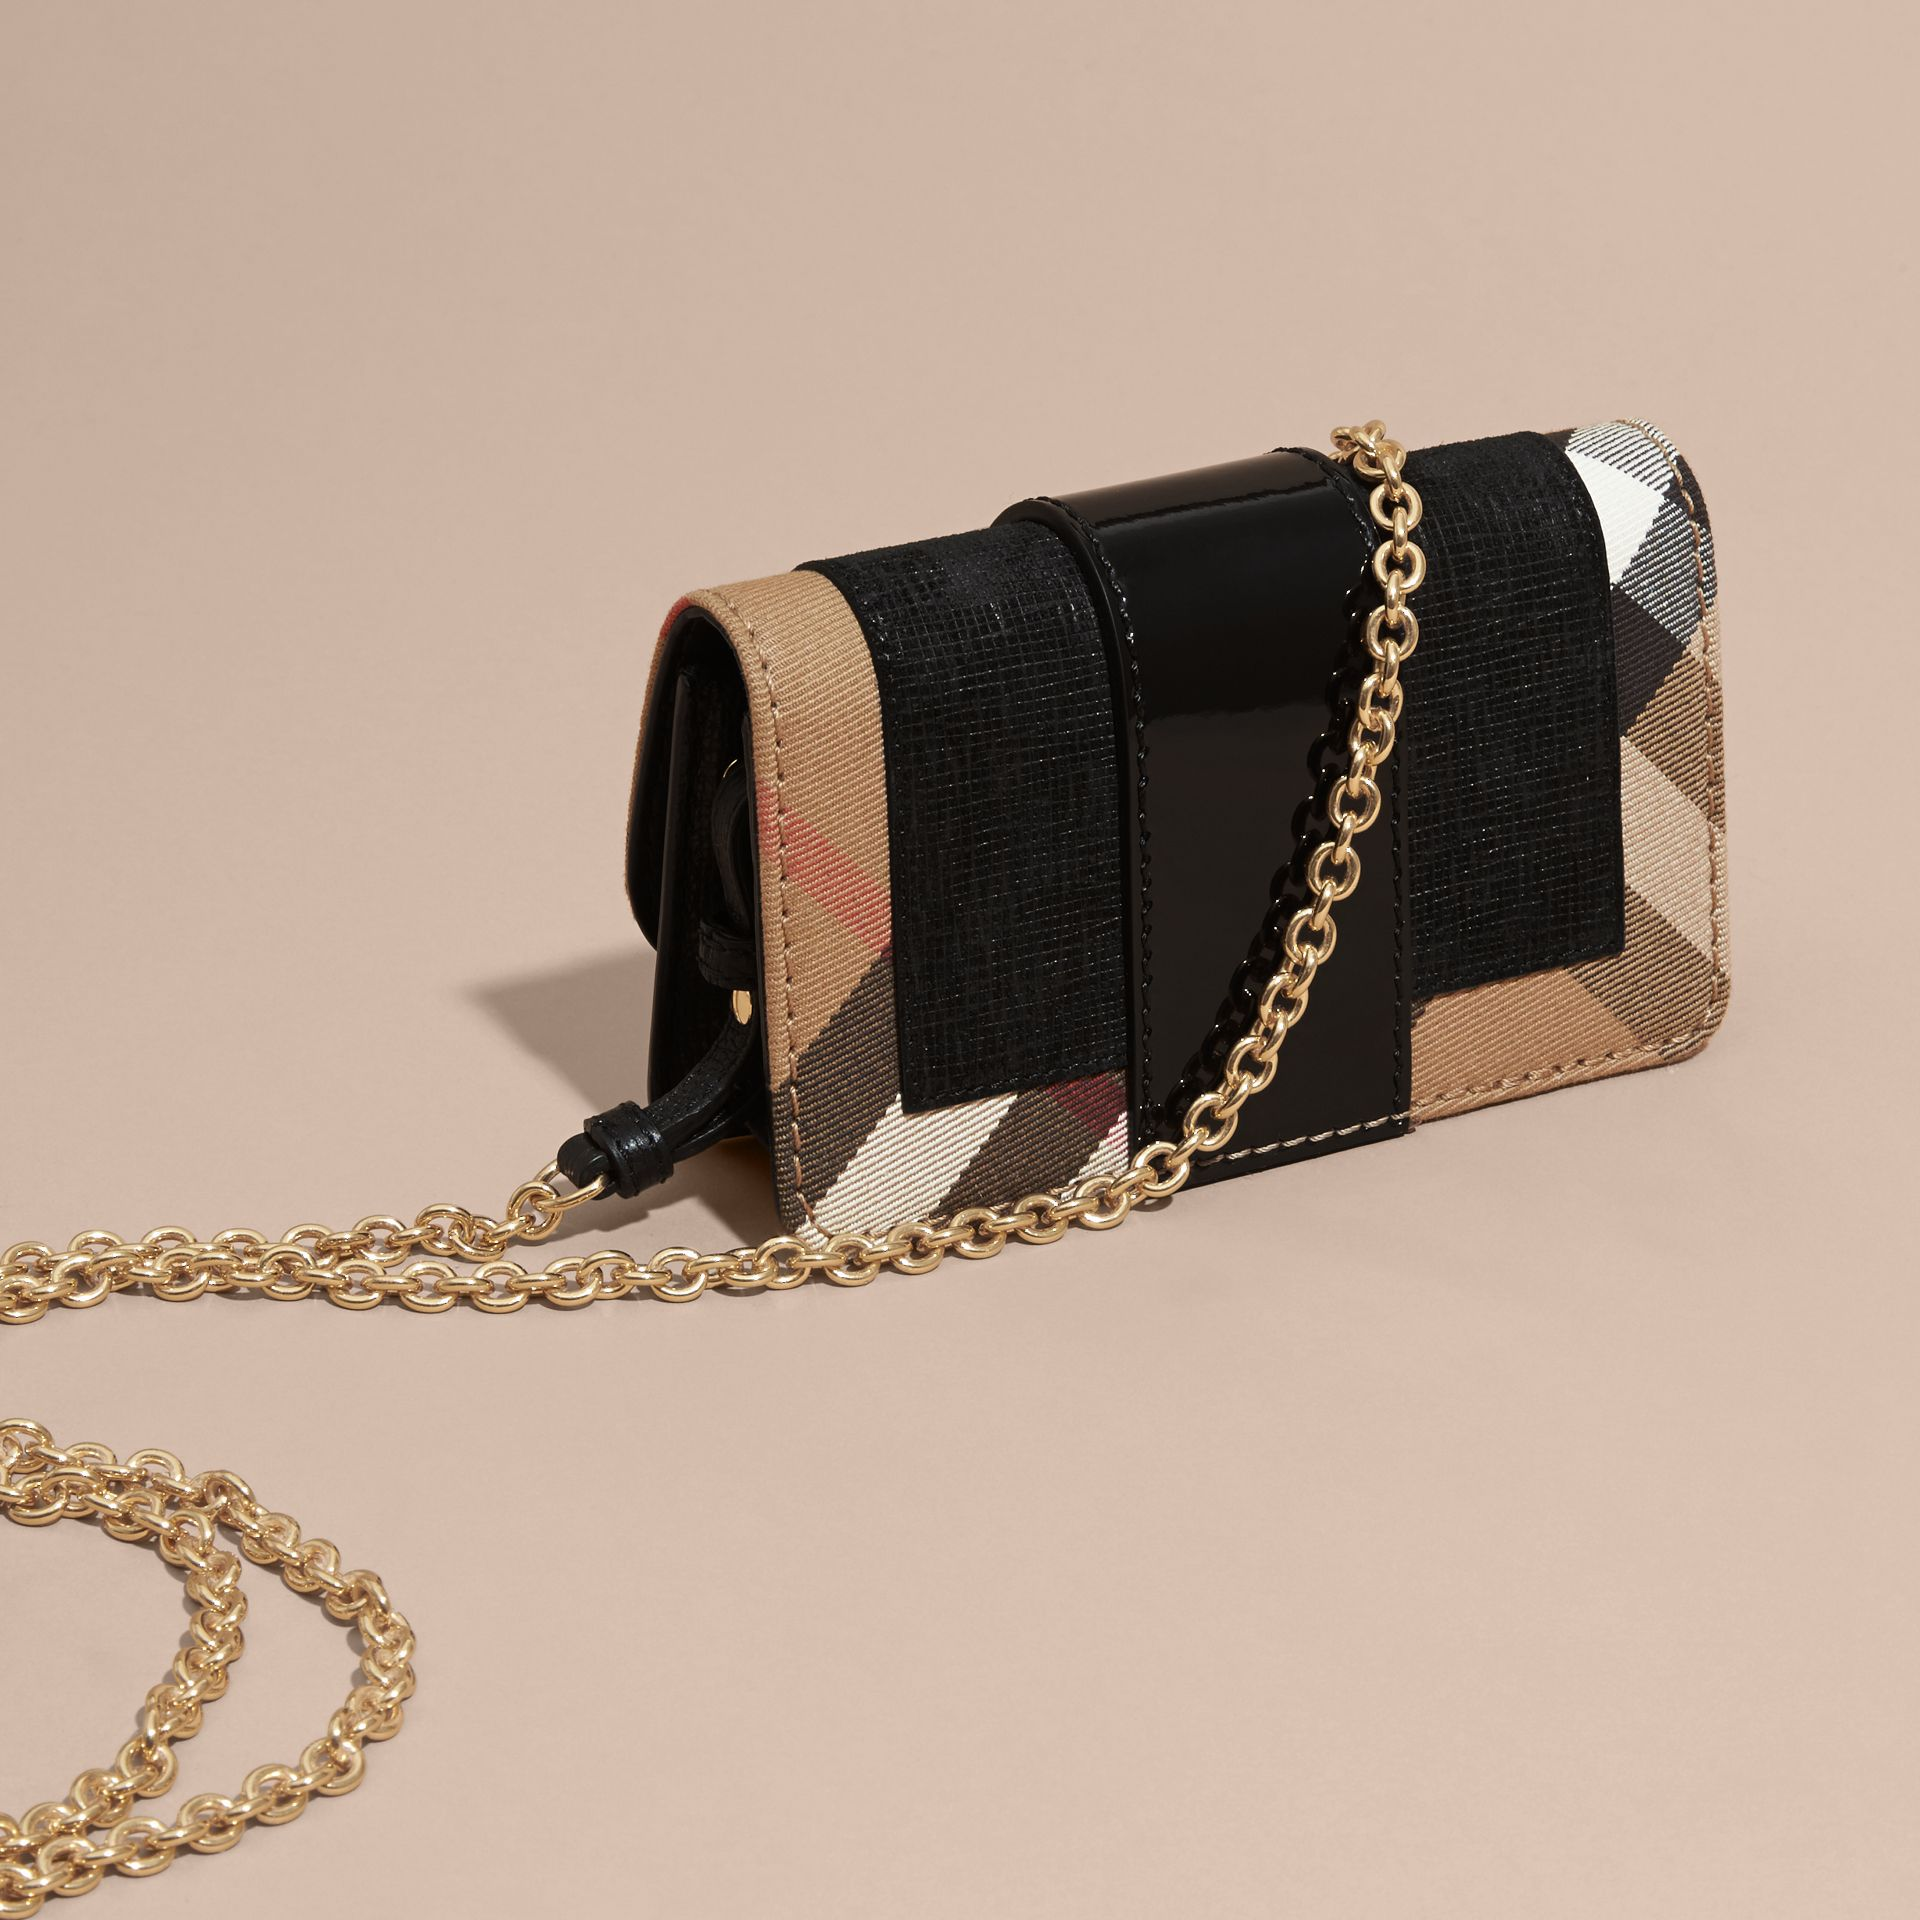 The Mini Buckle Bag in Leather and House Check in Black - Women | Burberry Australia - gallery image 5